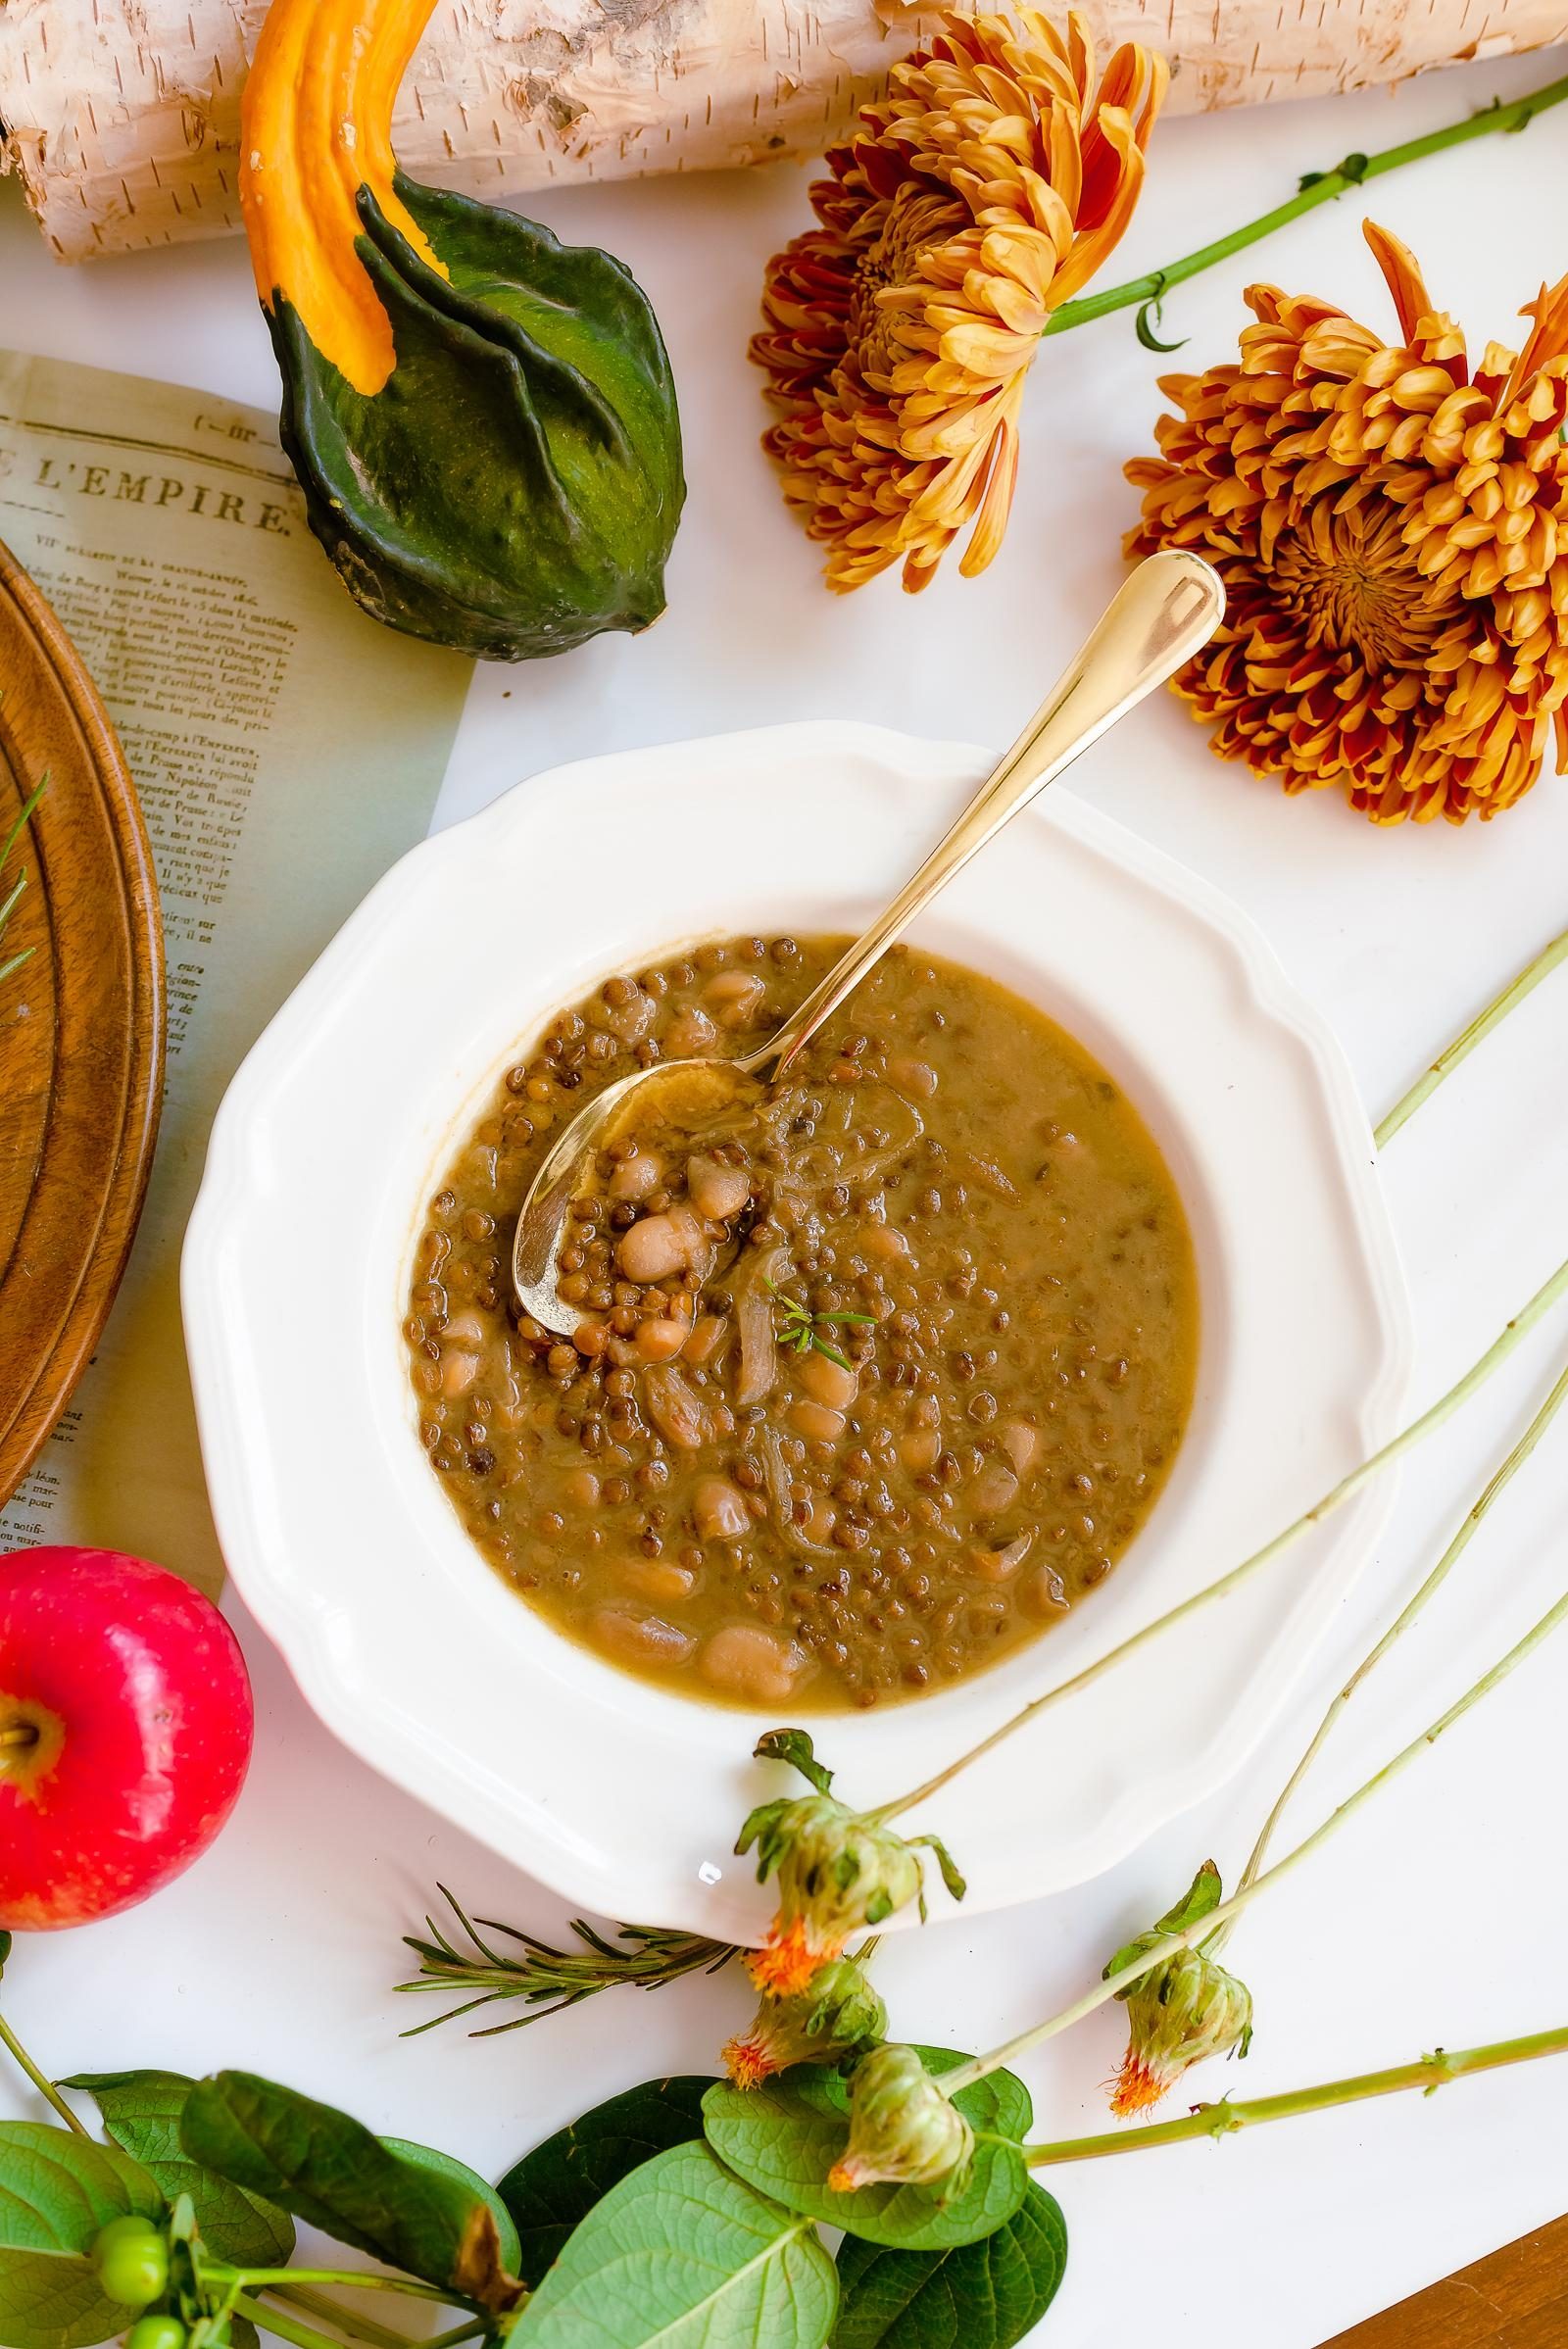 Lentil Bean Soup with Rosemary Recipe